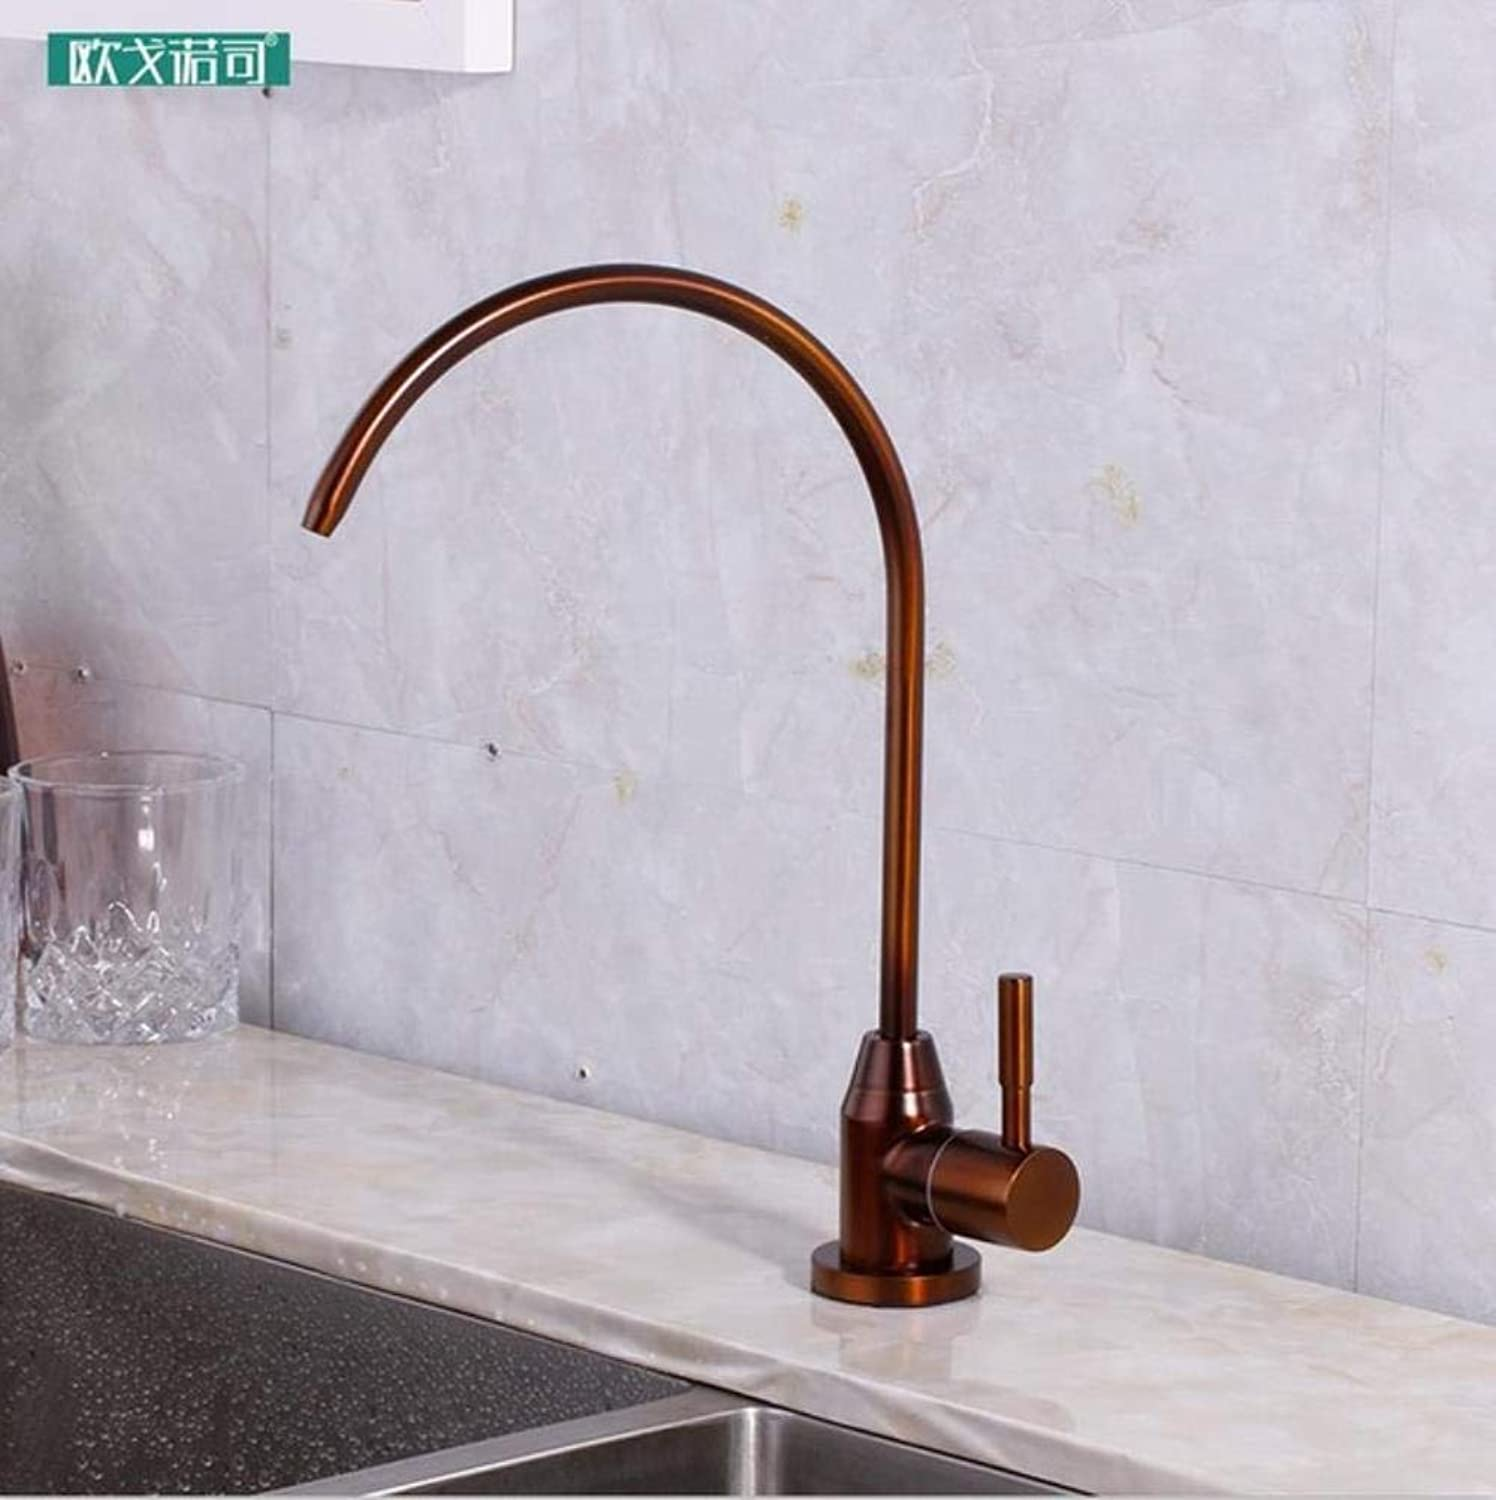 Kai&Guo Champagne and bronze color drinking water filter faucet for kitchen,C